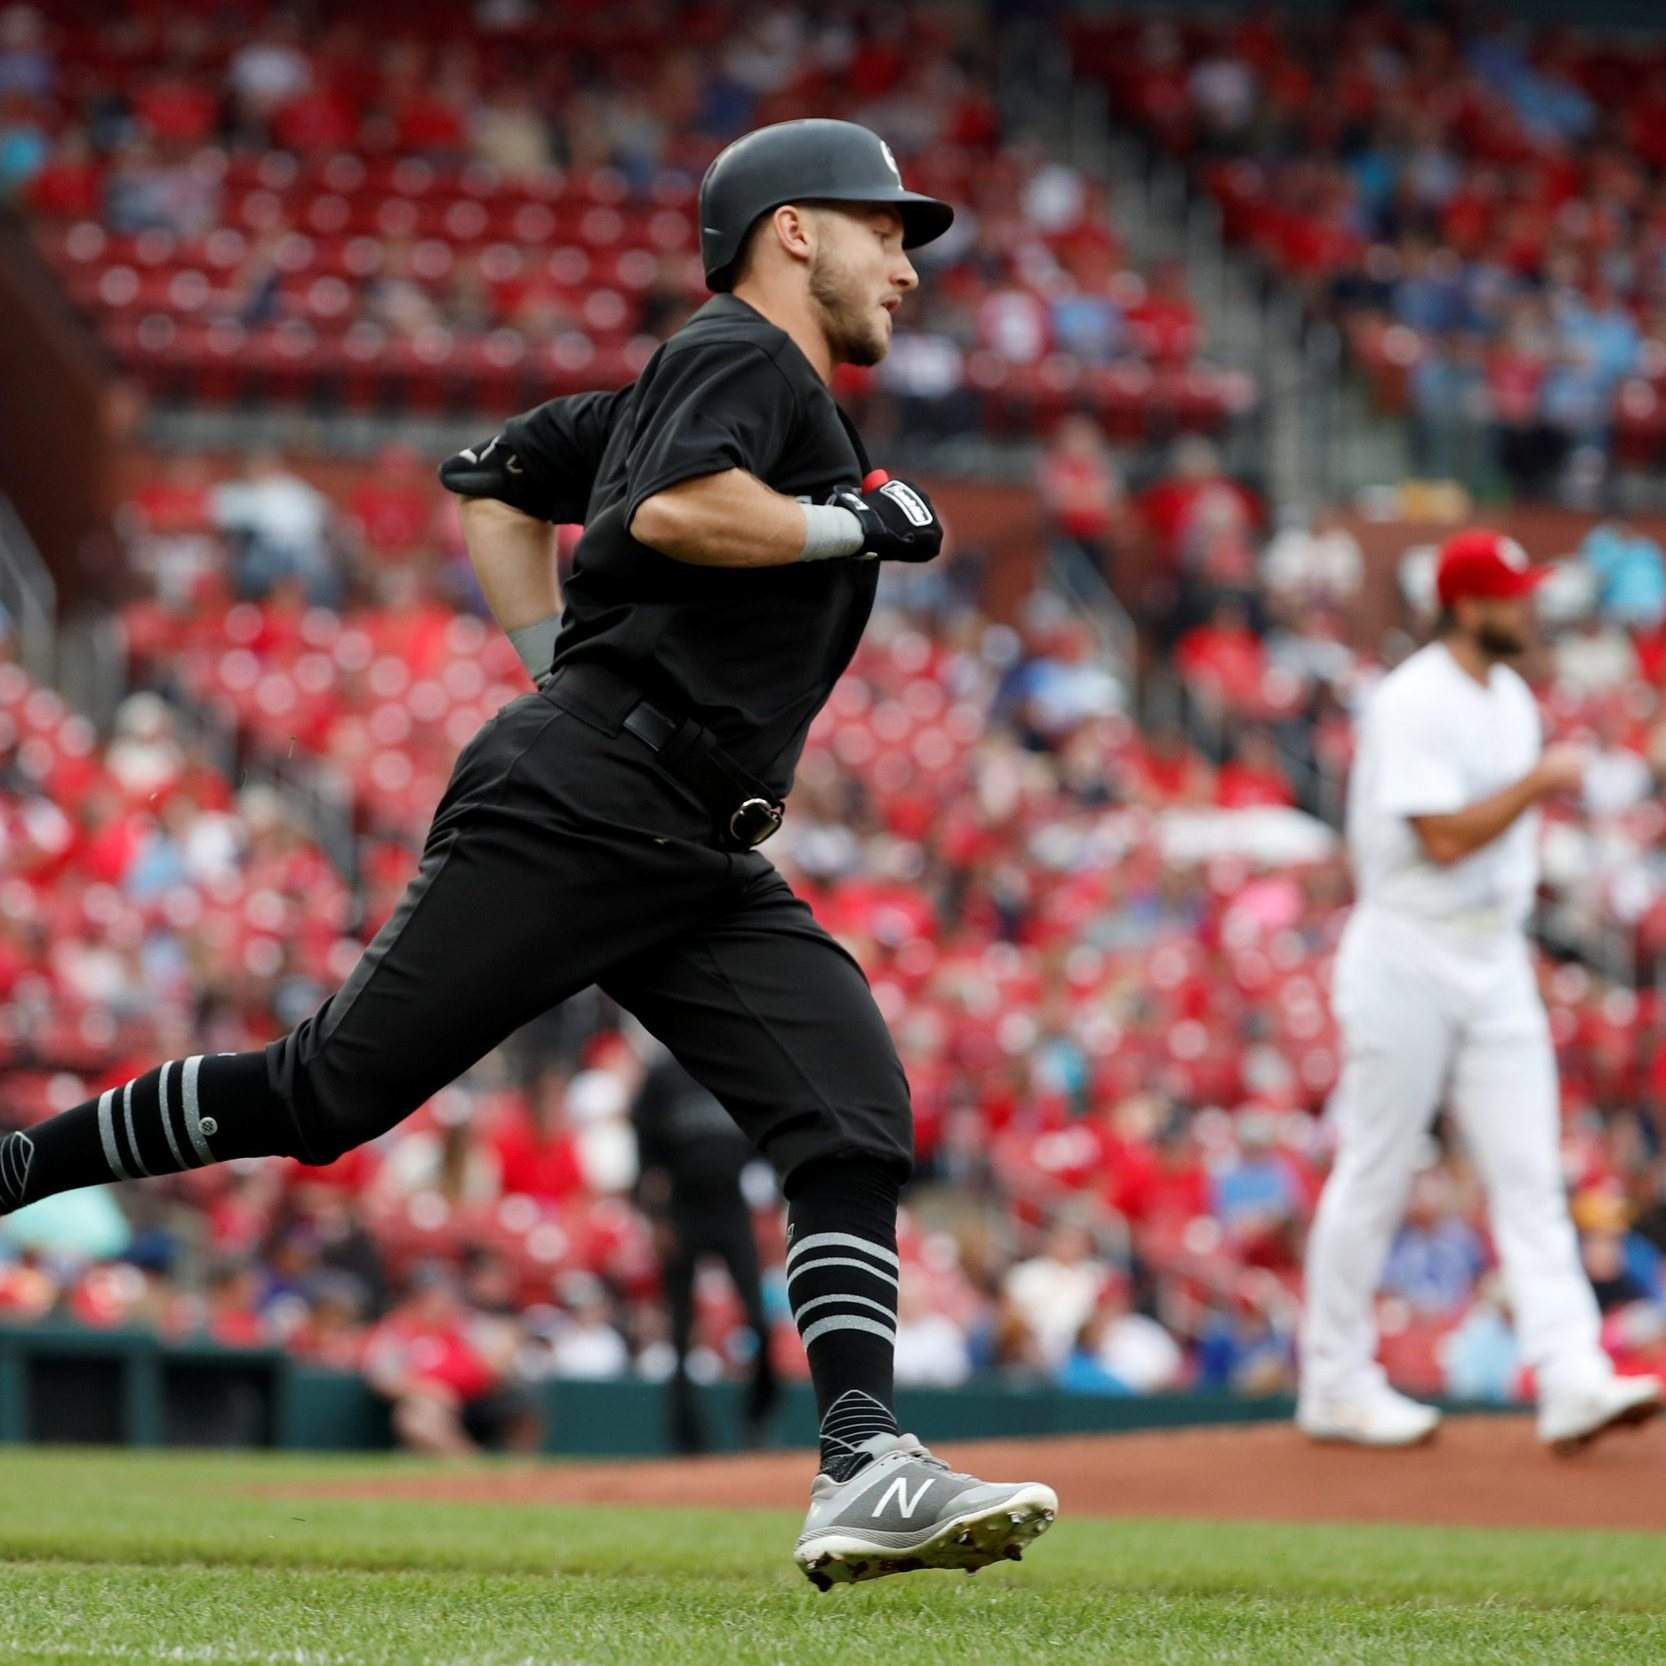 Rockies pitchers roughed up in sweep by Cardinals